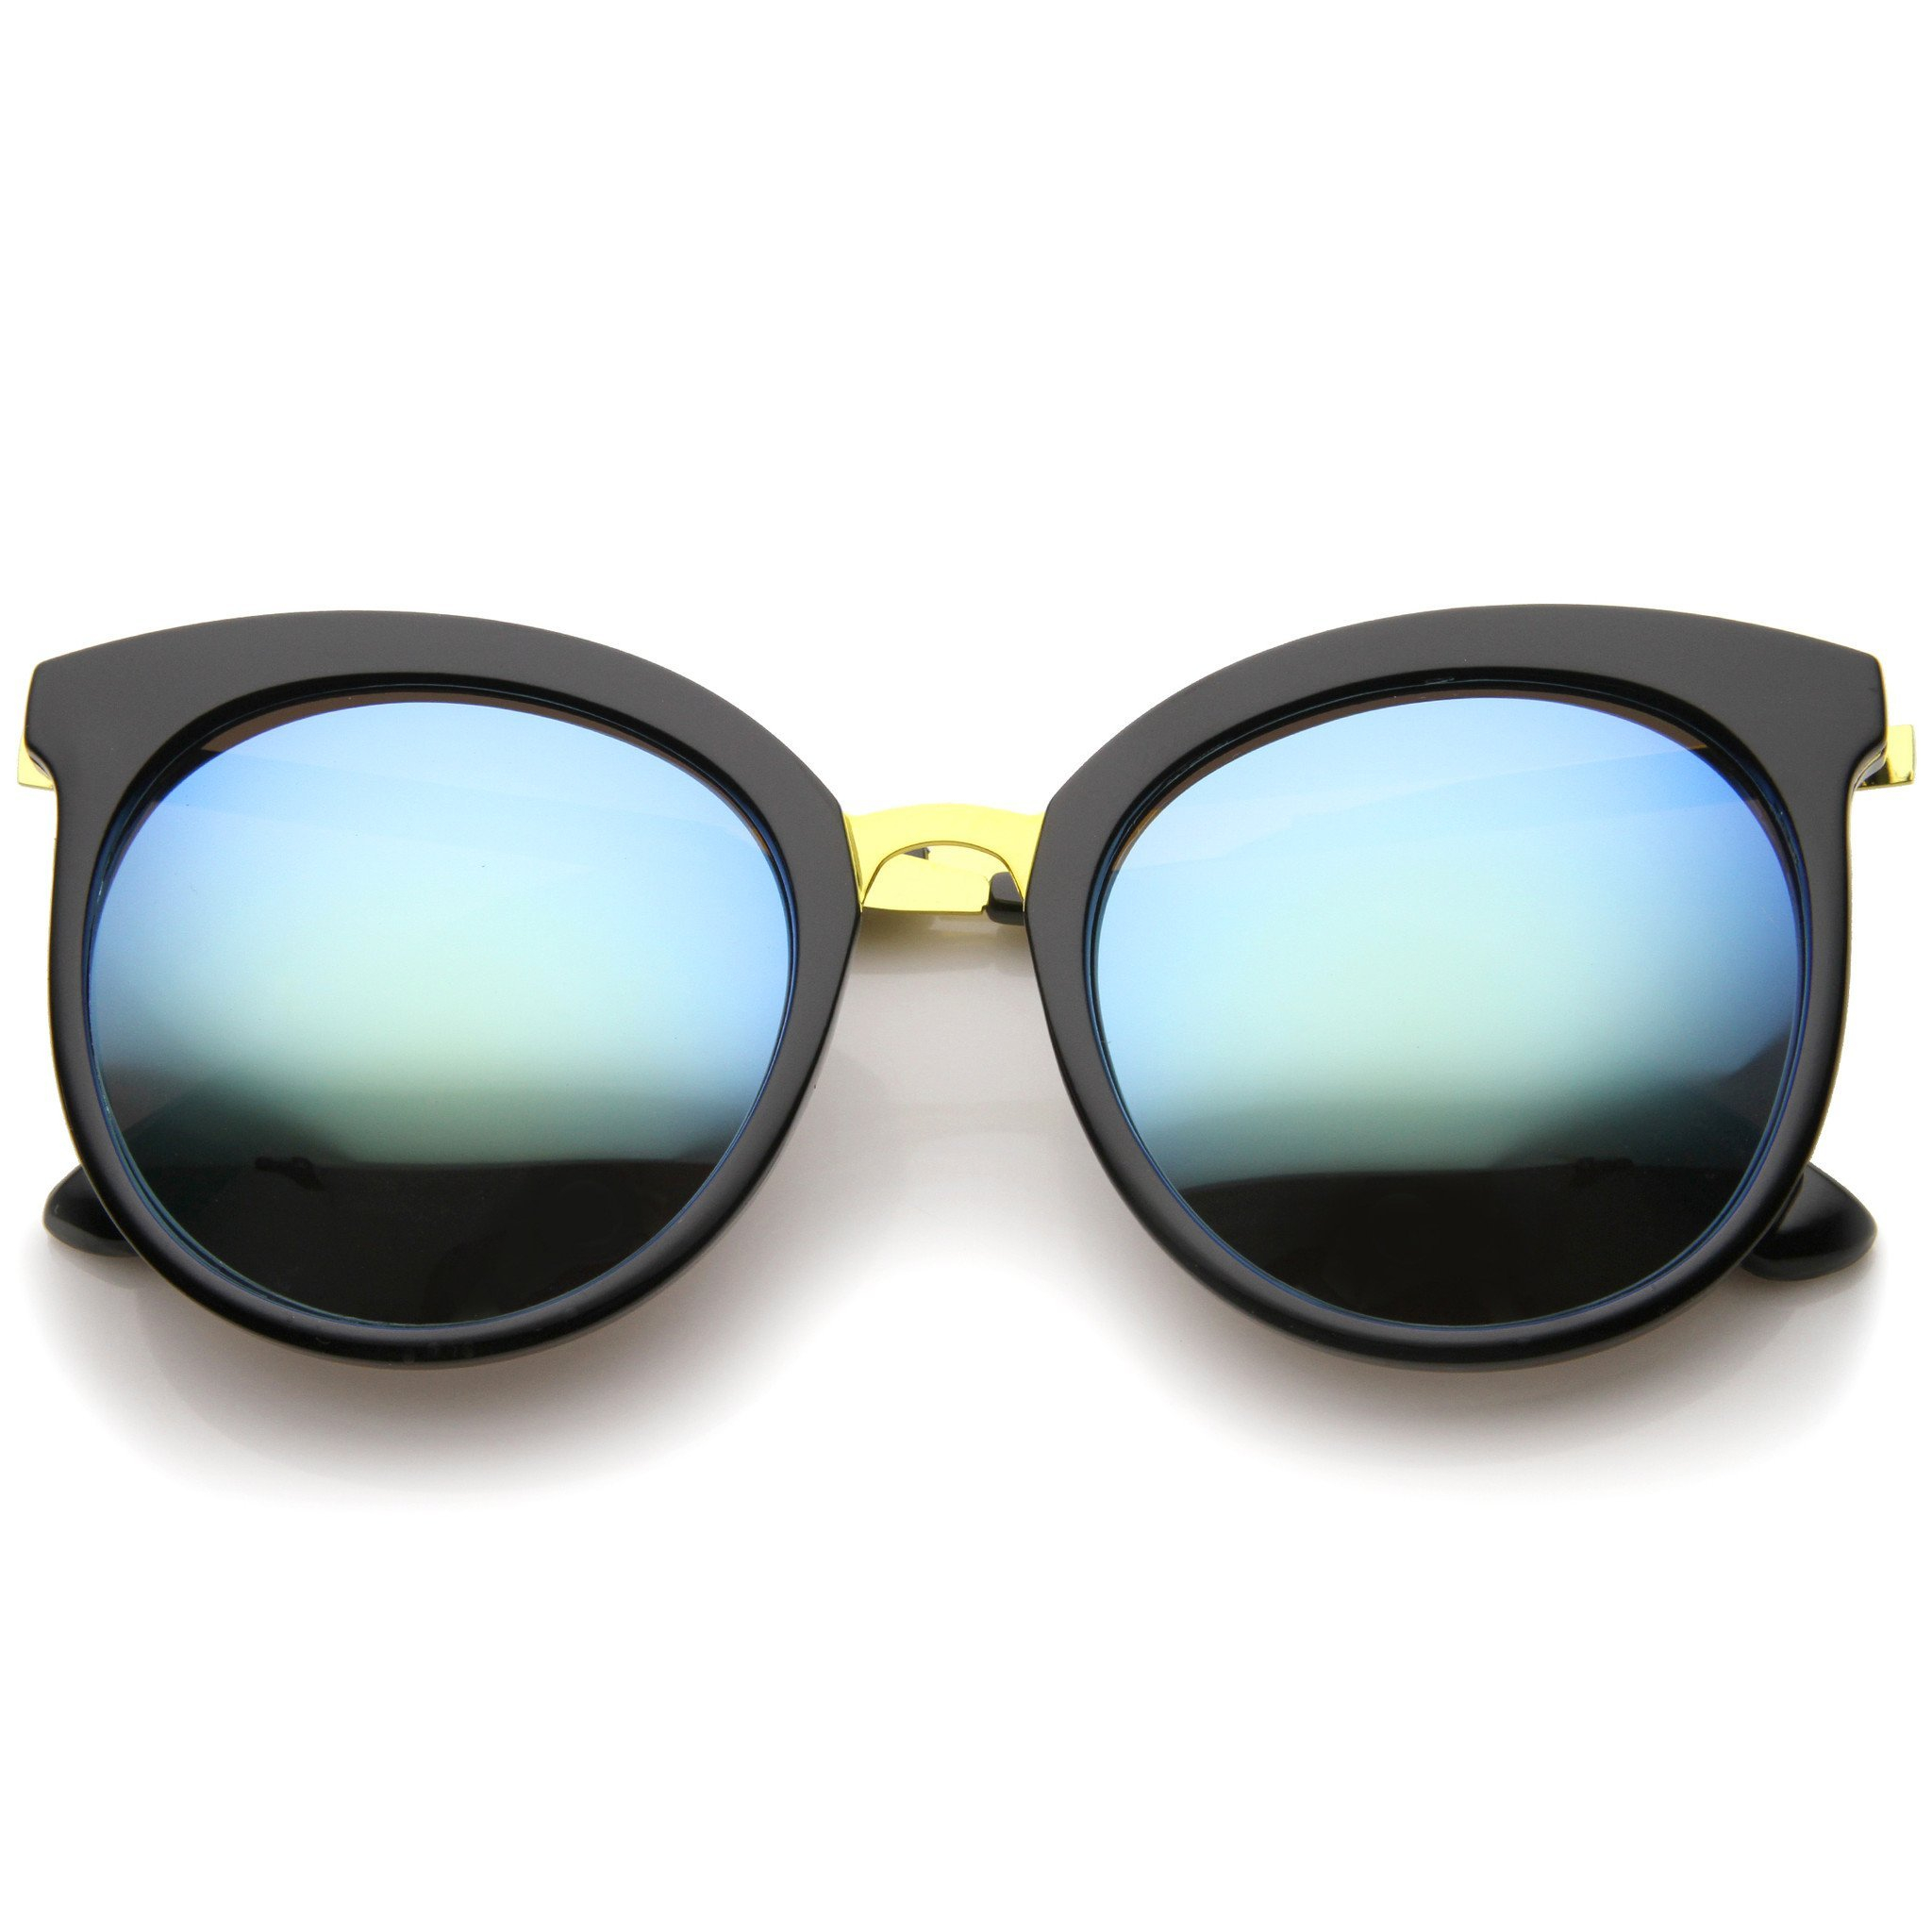 Image of Women's Oversize Cat Eye Mirrored Lens Round Sunglasses A229